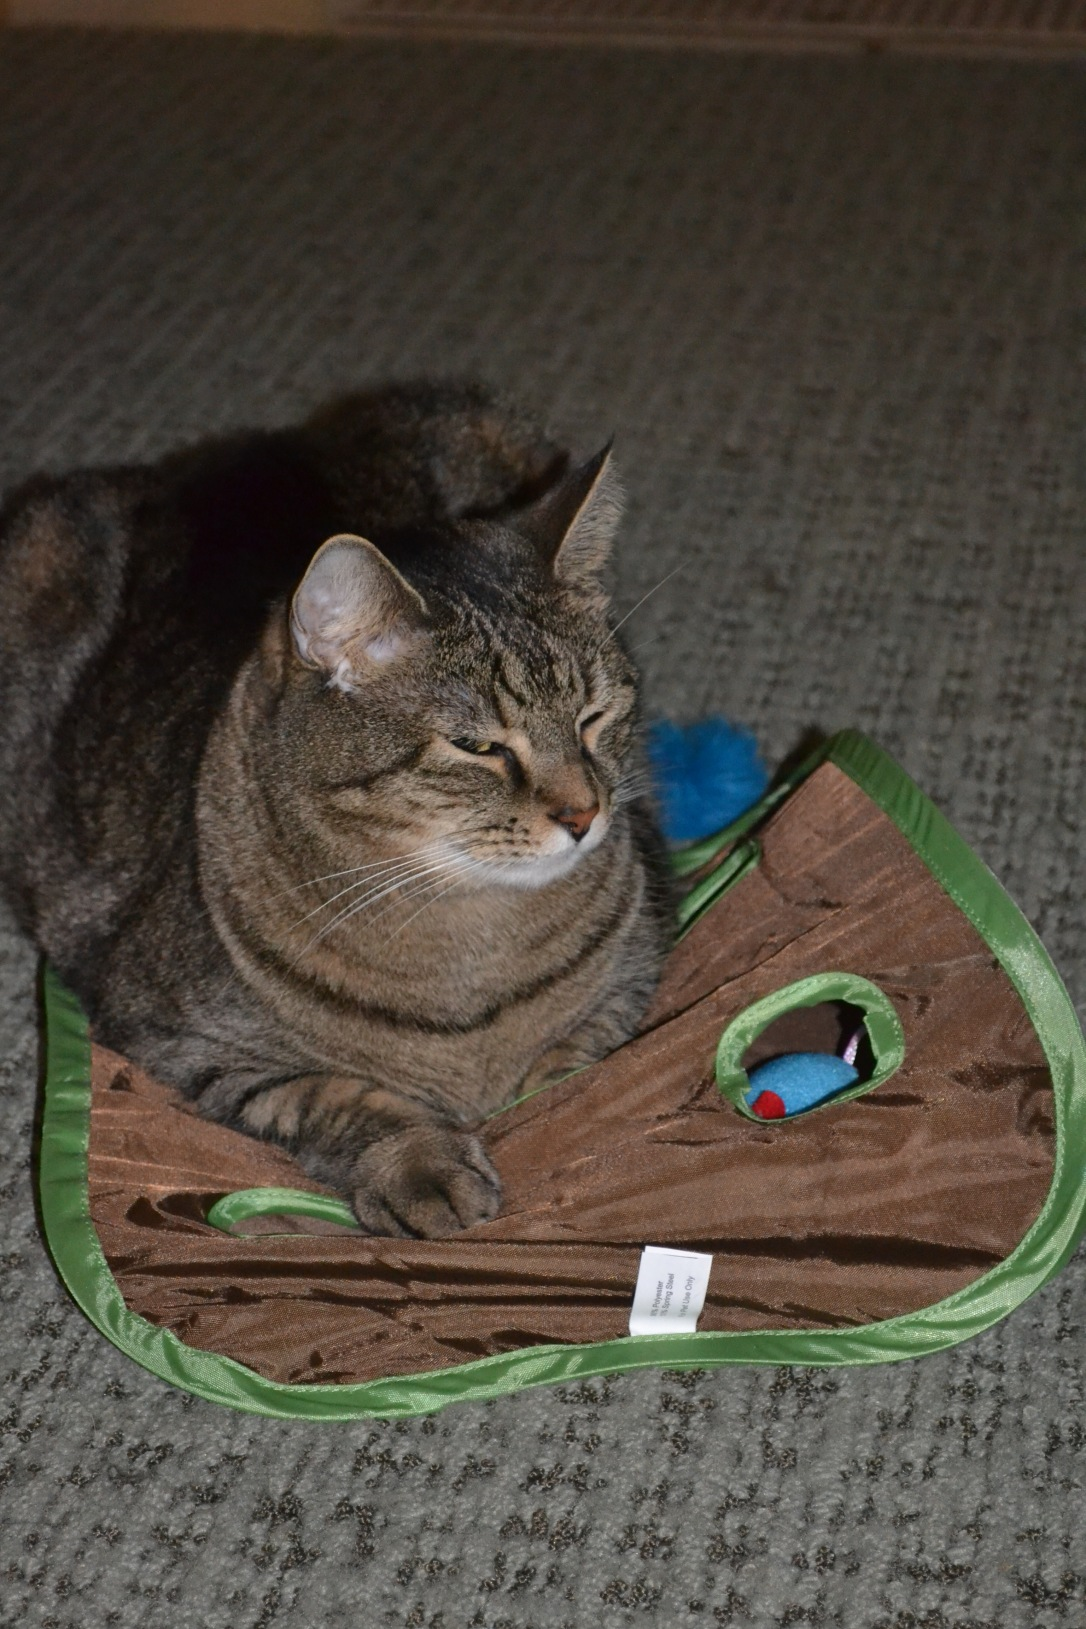 Sitting on the cat toy